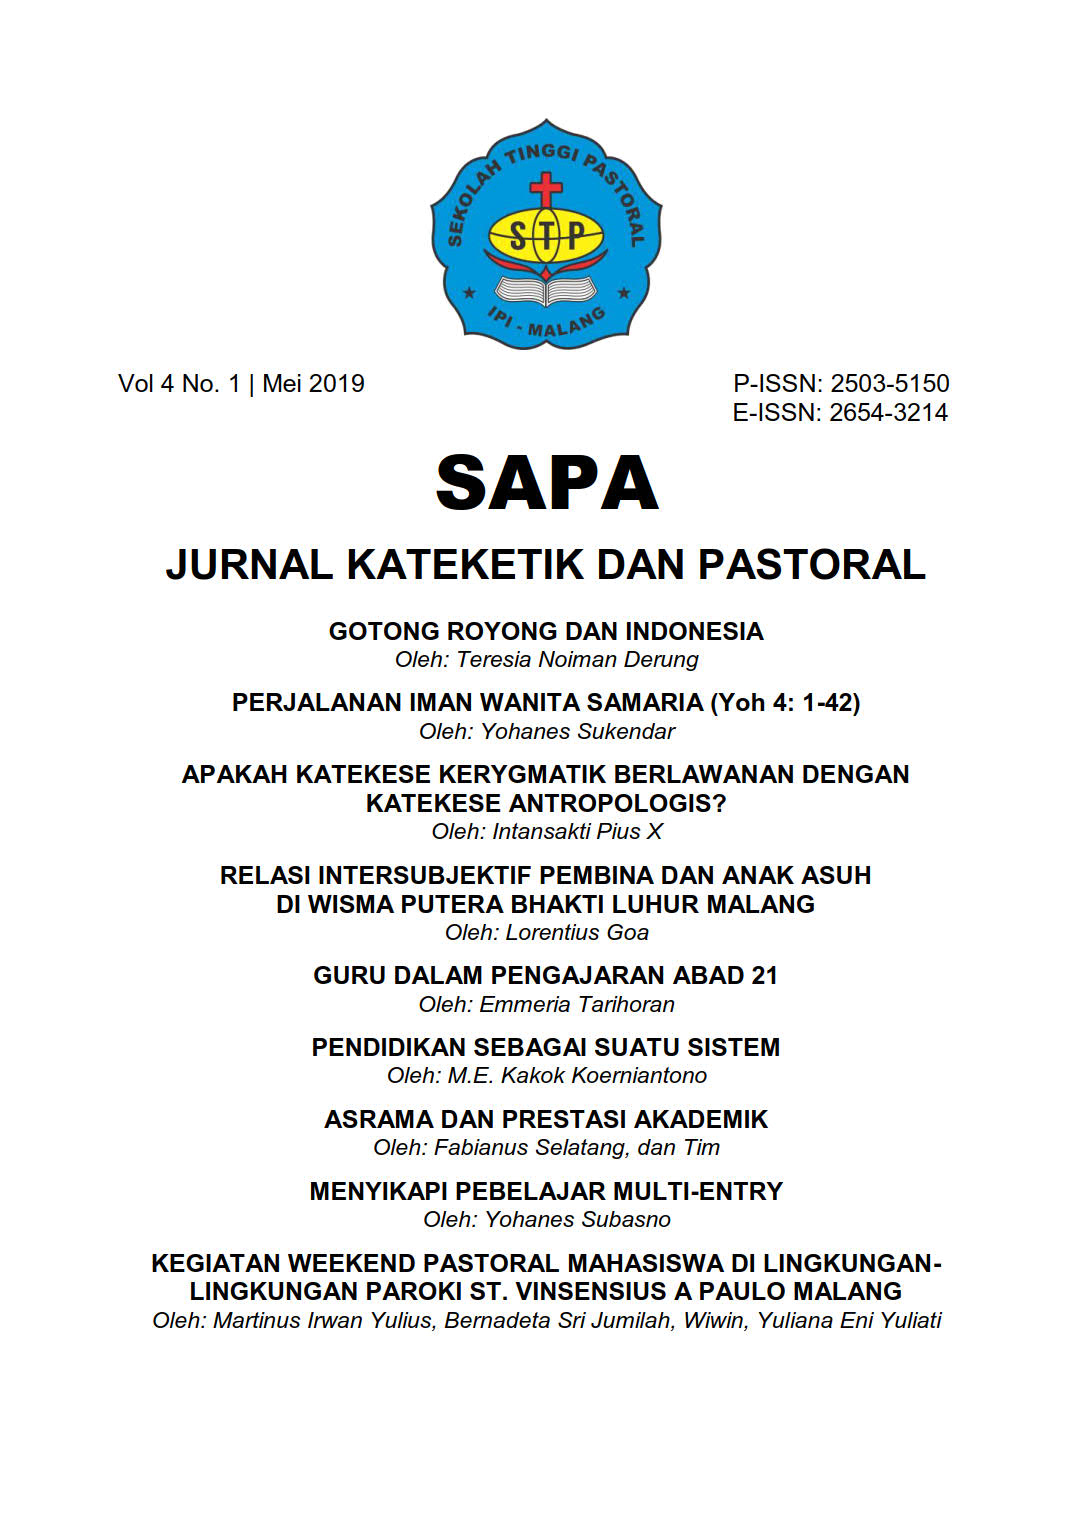 SAPA volume 4 number 1